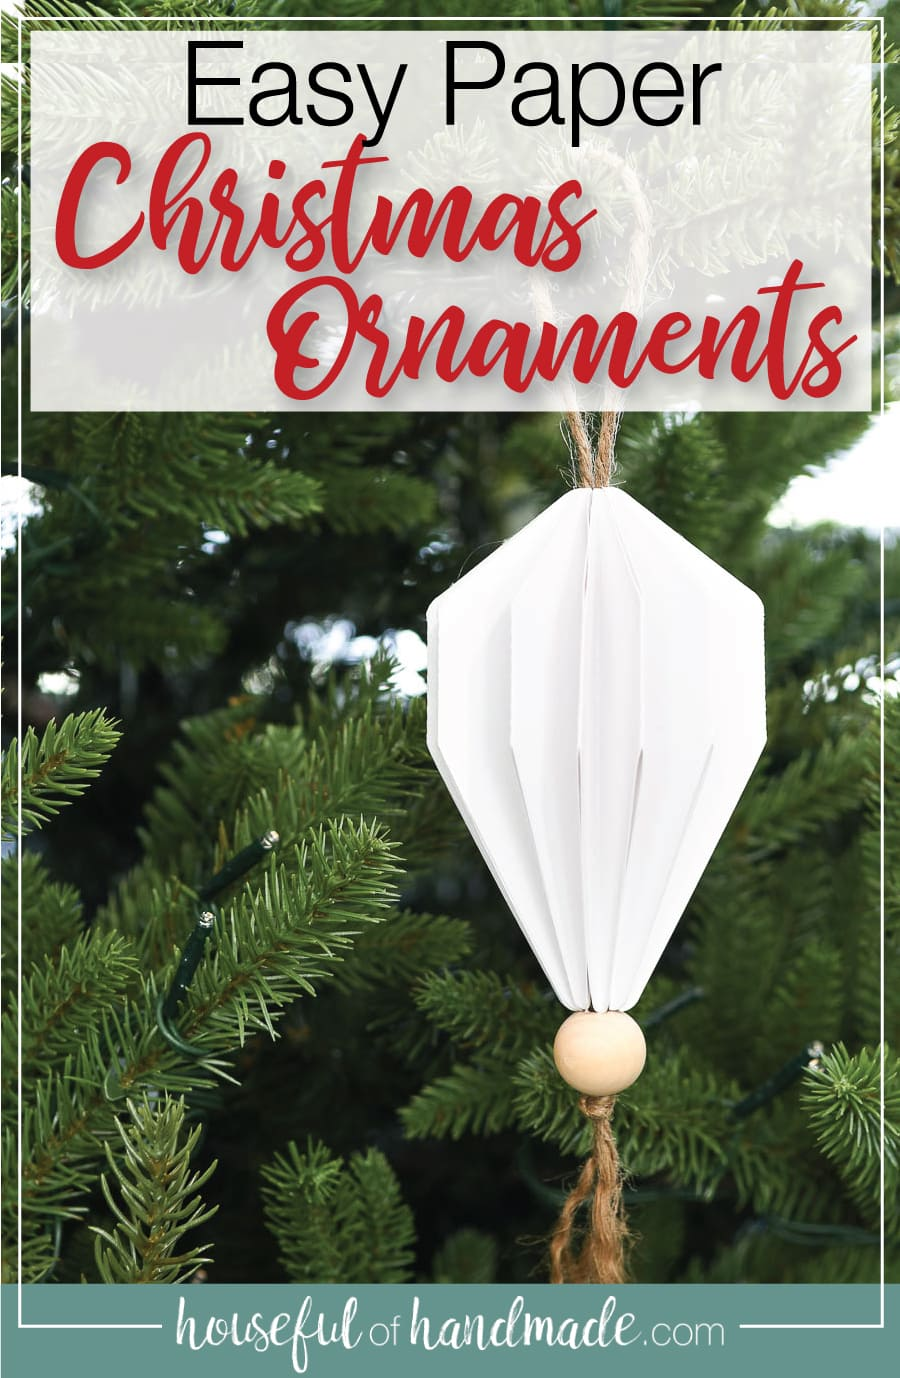 3D Jewel Christmas ornament hanging on a tree with text overlay: easy paper Christmas ornaments.